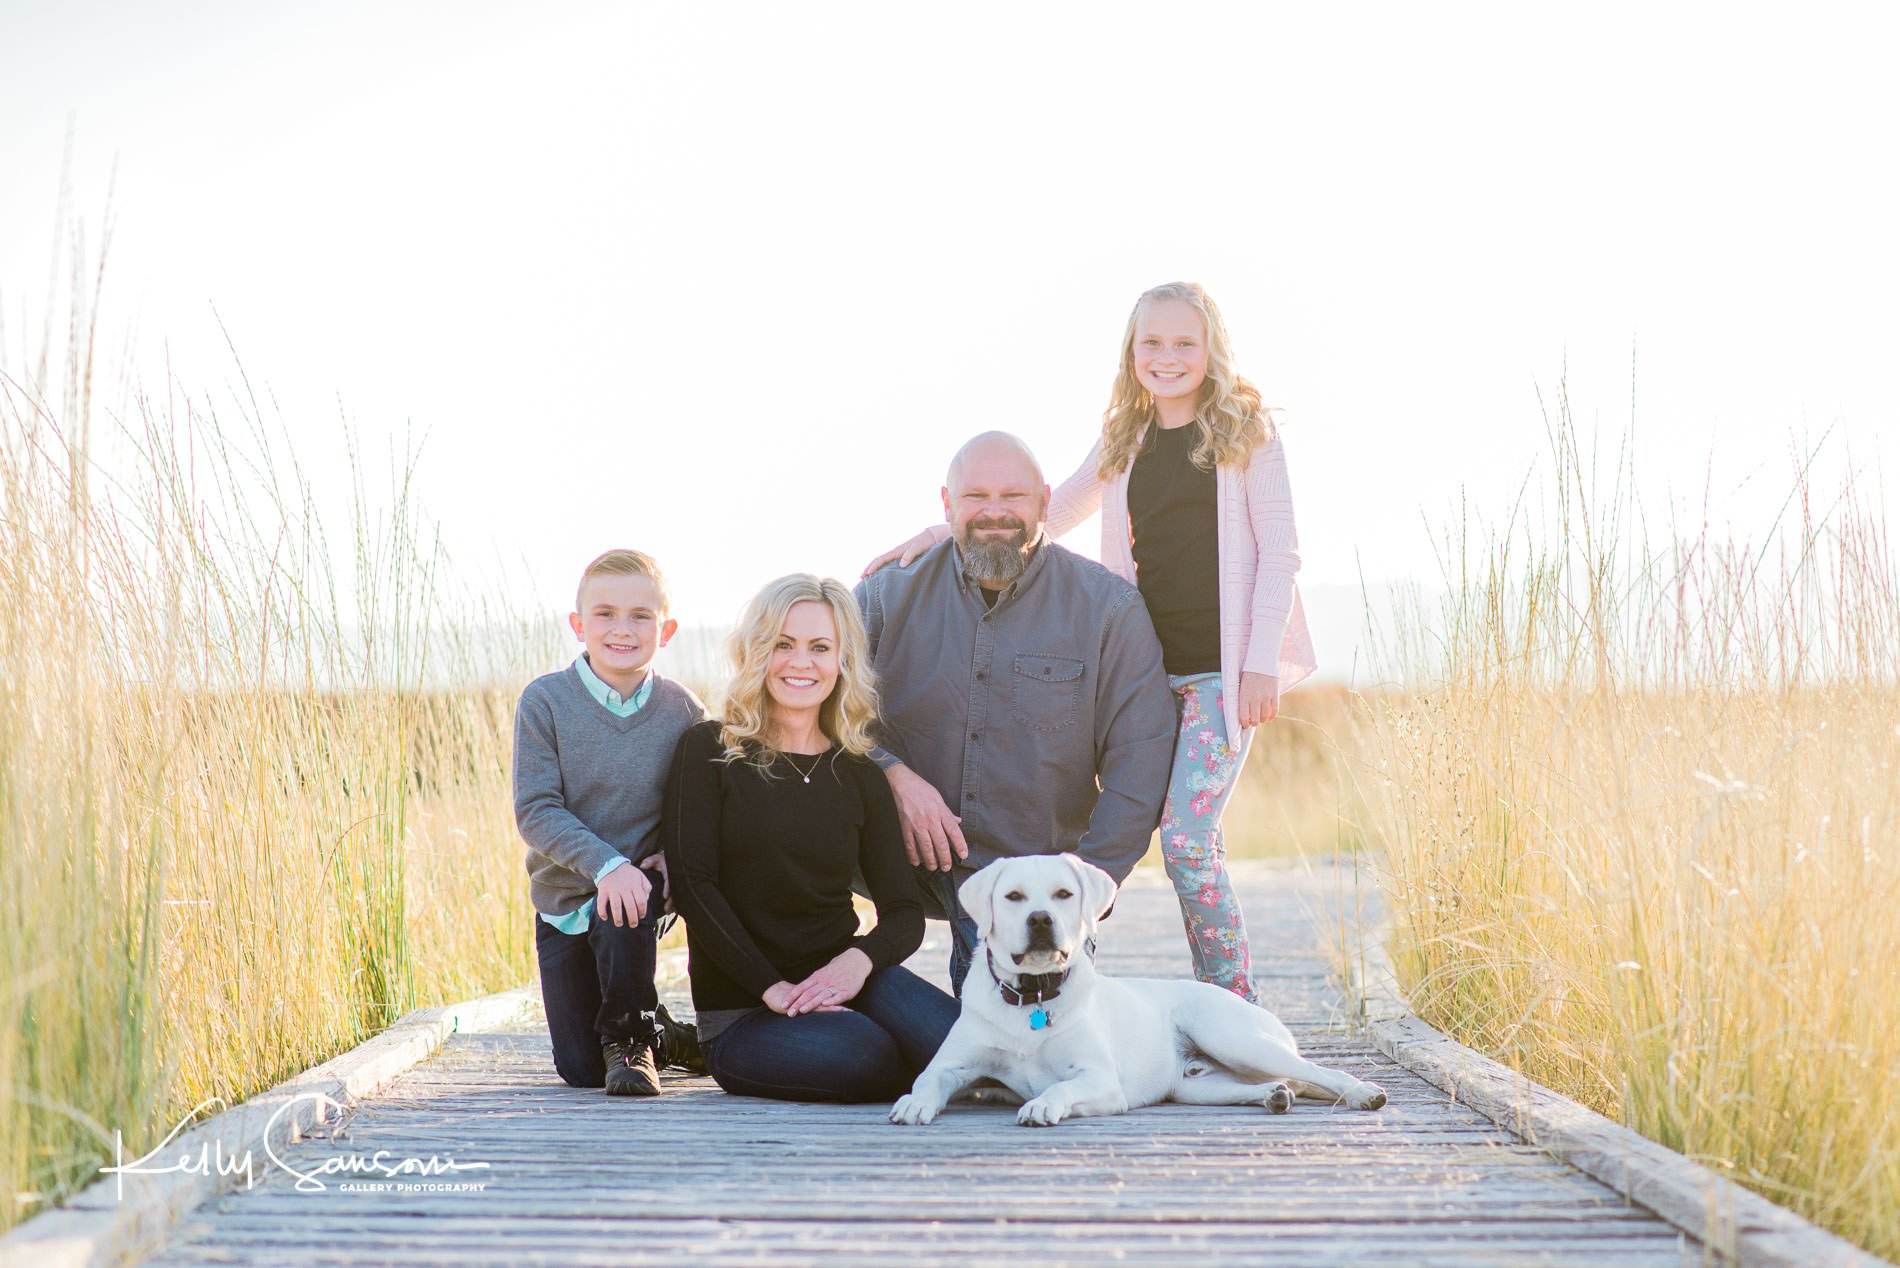 Family with dog sitting on boardwalk with talk grasses all around for Ogden family photography.